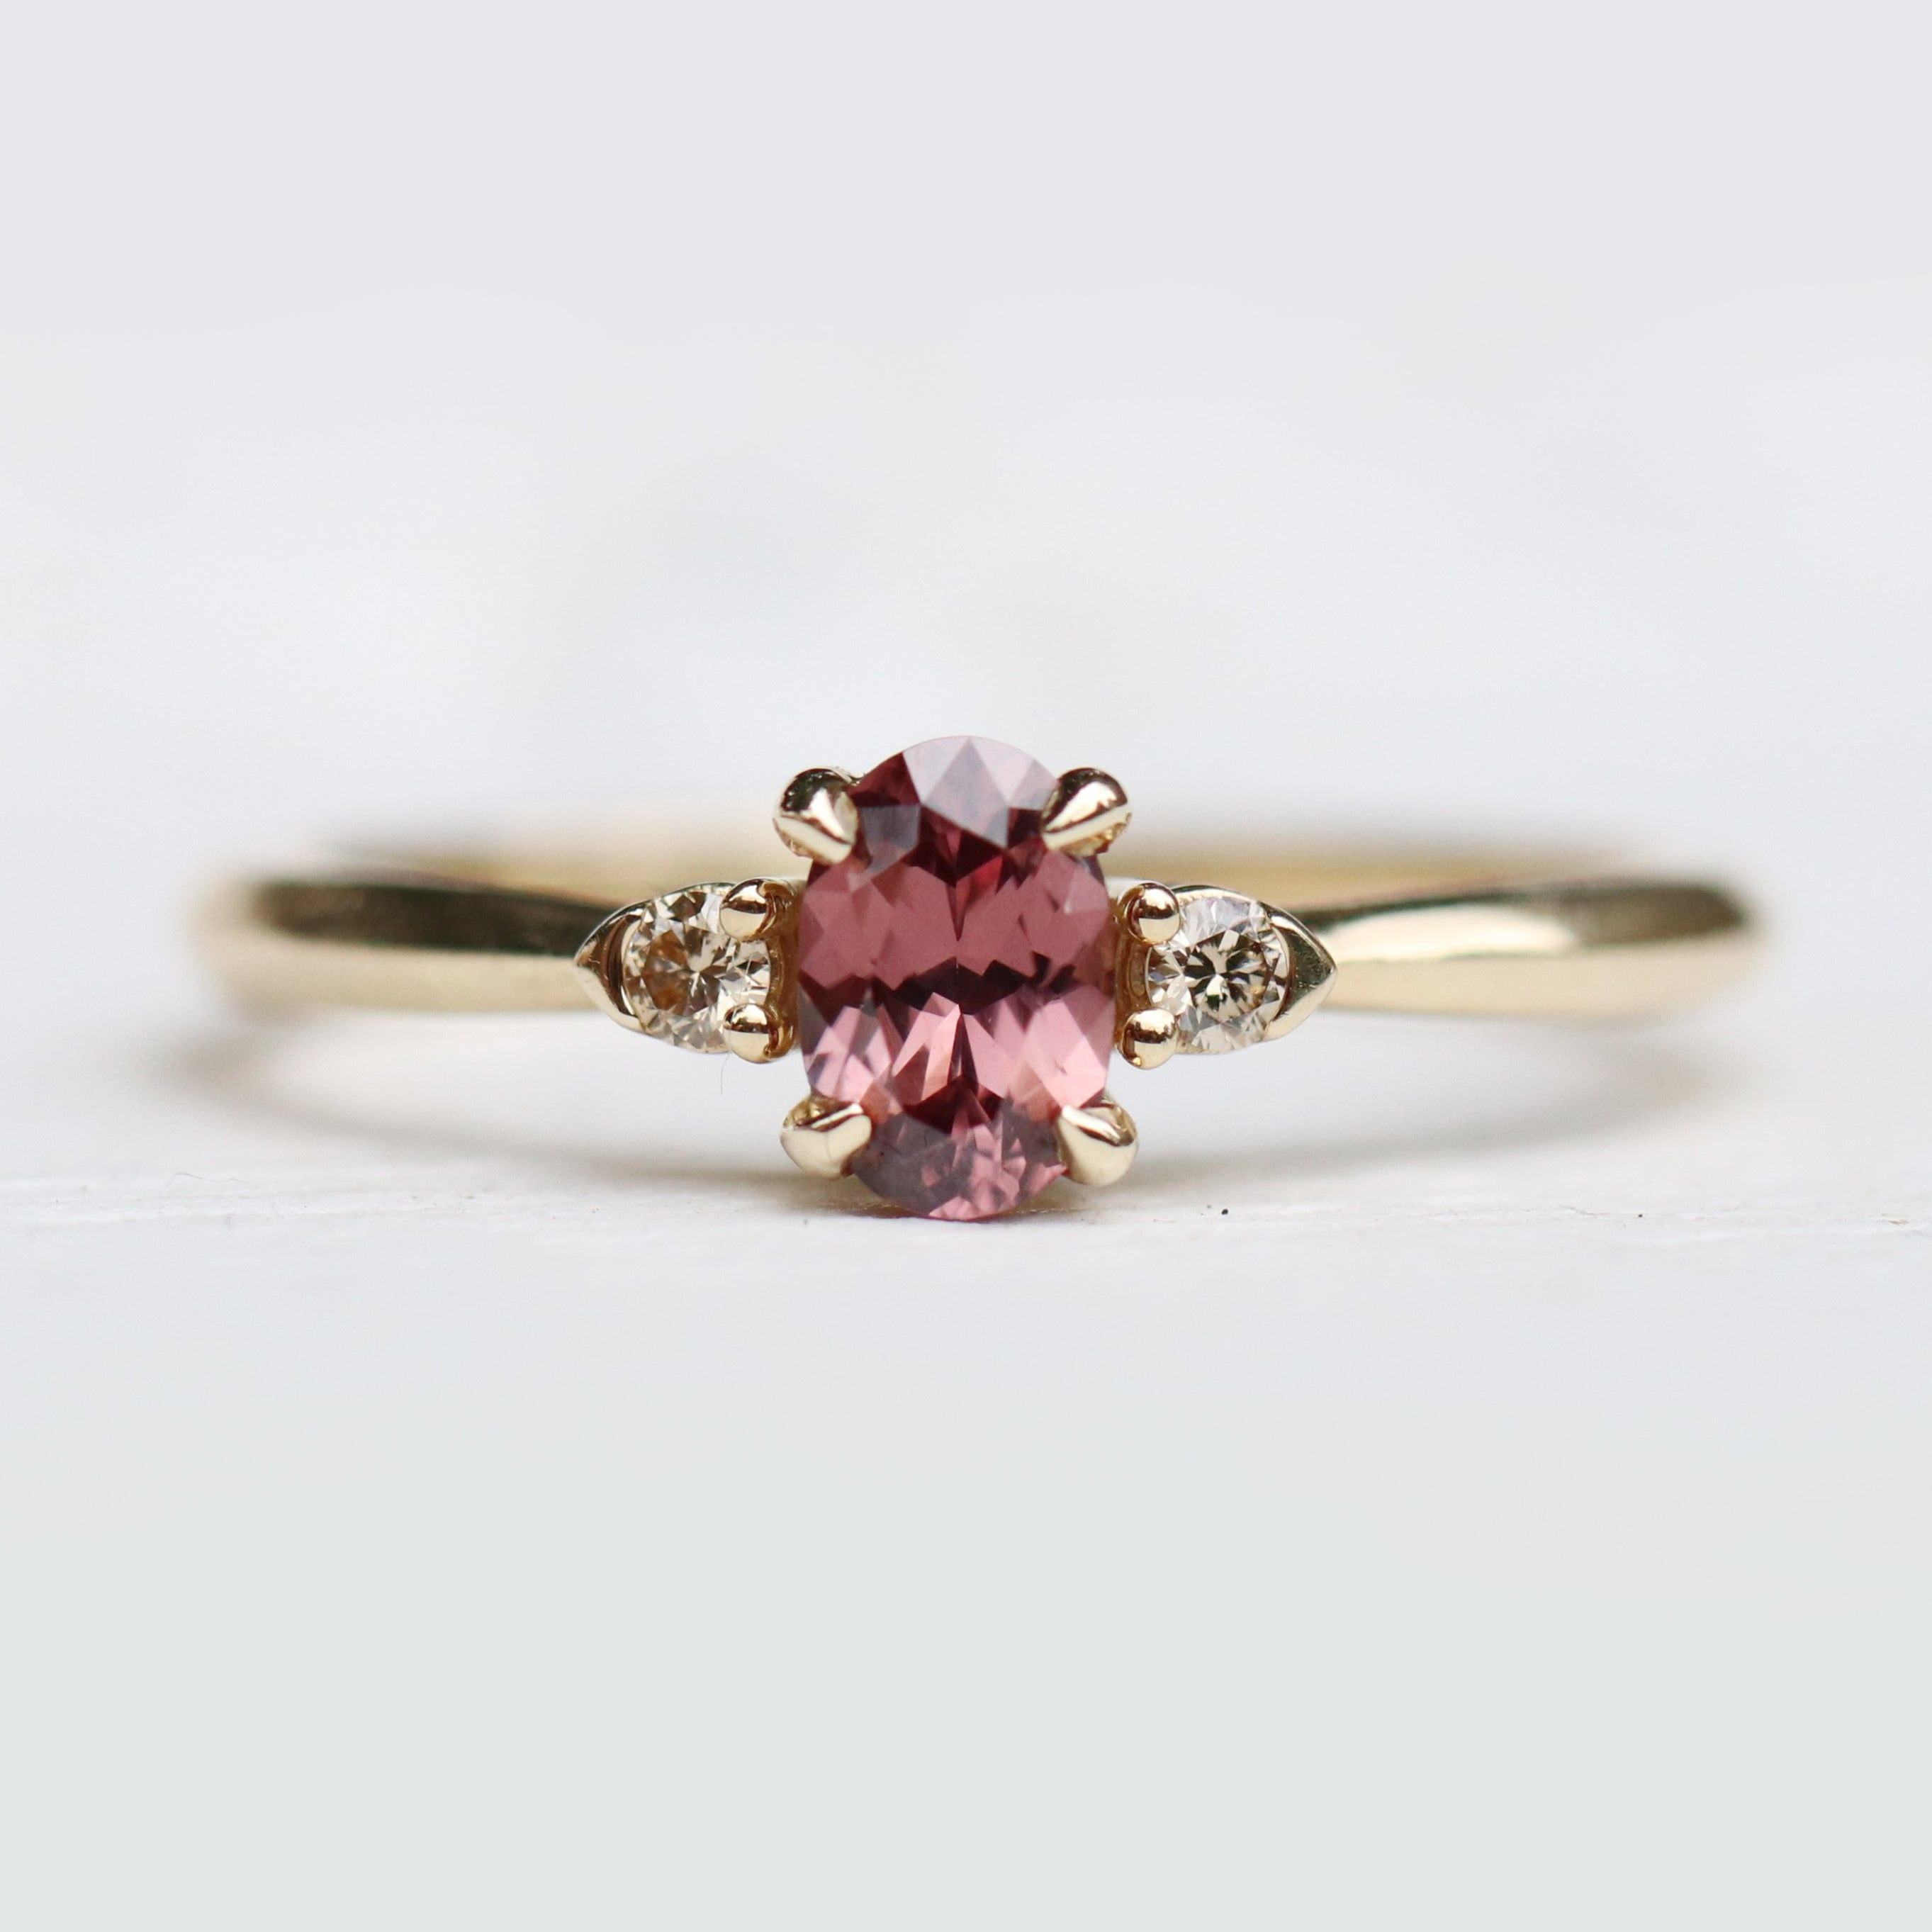 Yardley Ring - Hyacinth Pink Zircon + Champagne Accent Diamonds - Ready to Size and Ship - Salt & Pepper Celestial Diamond Engagement Rings and Wedding Bands  by Midwinter Co.